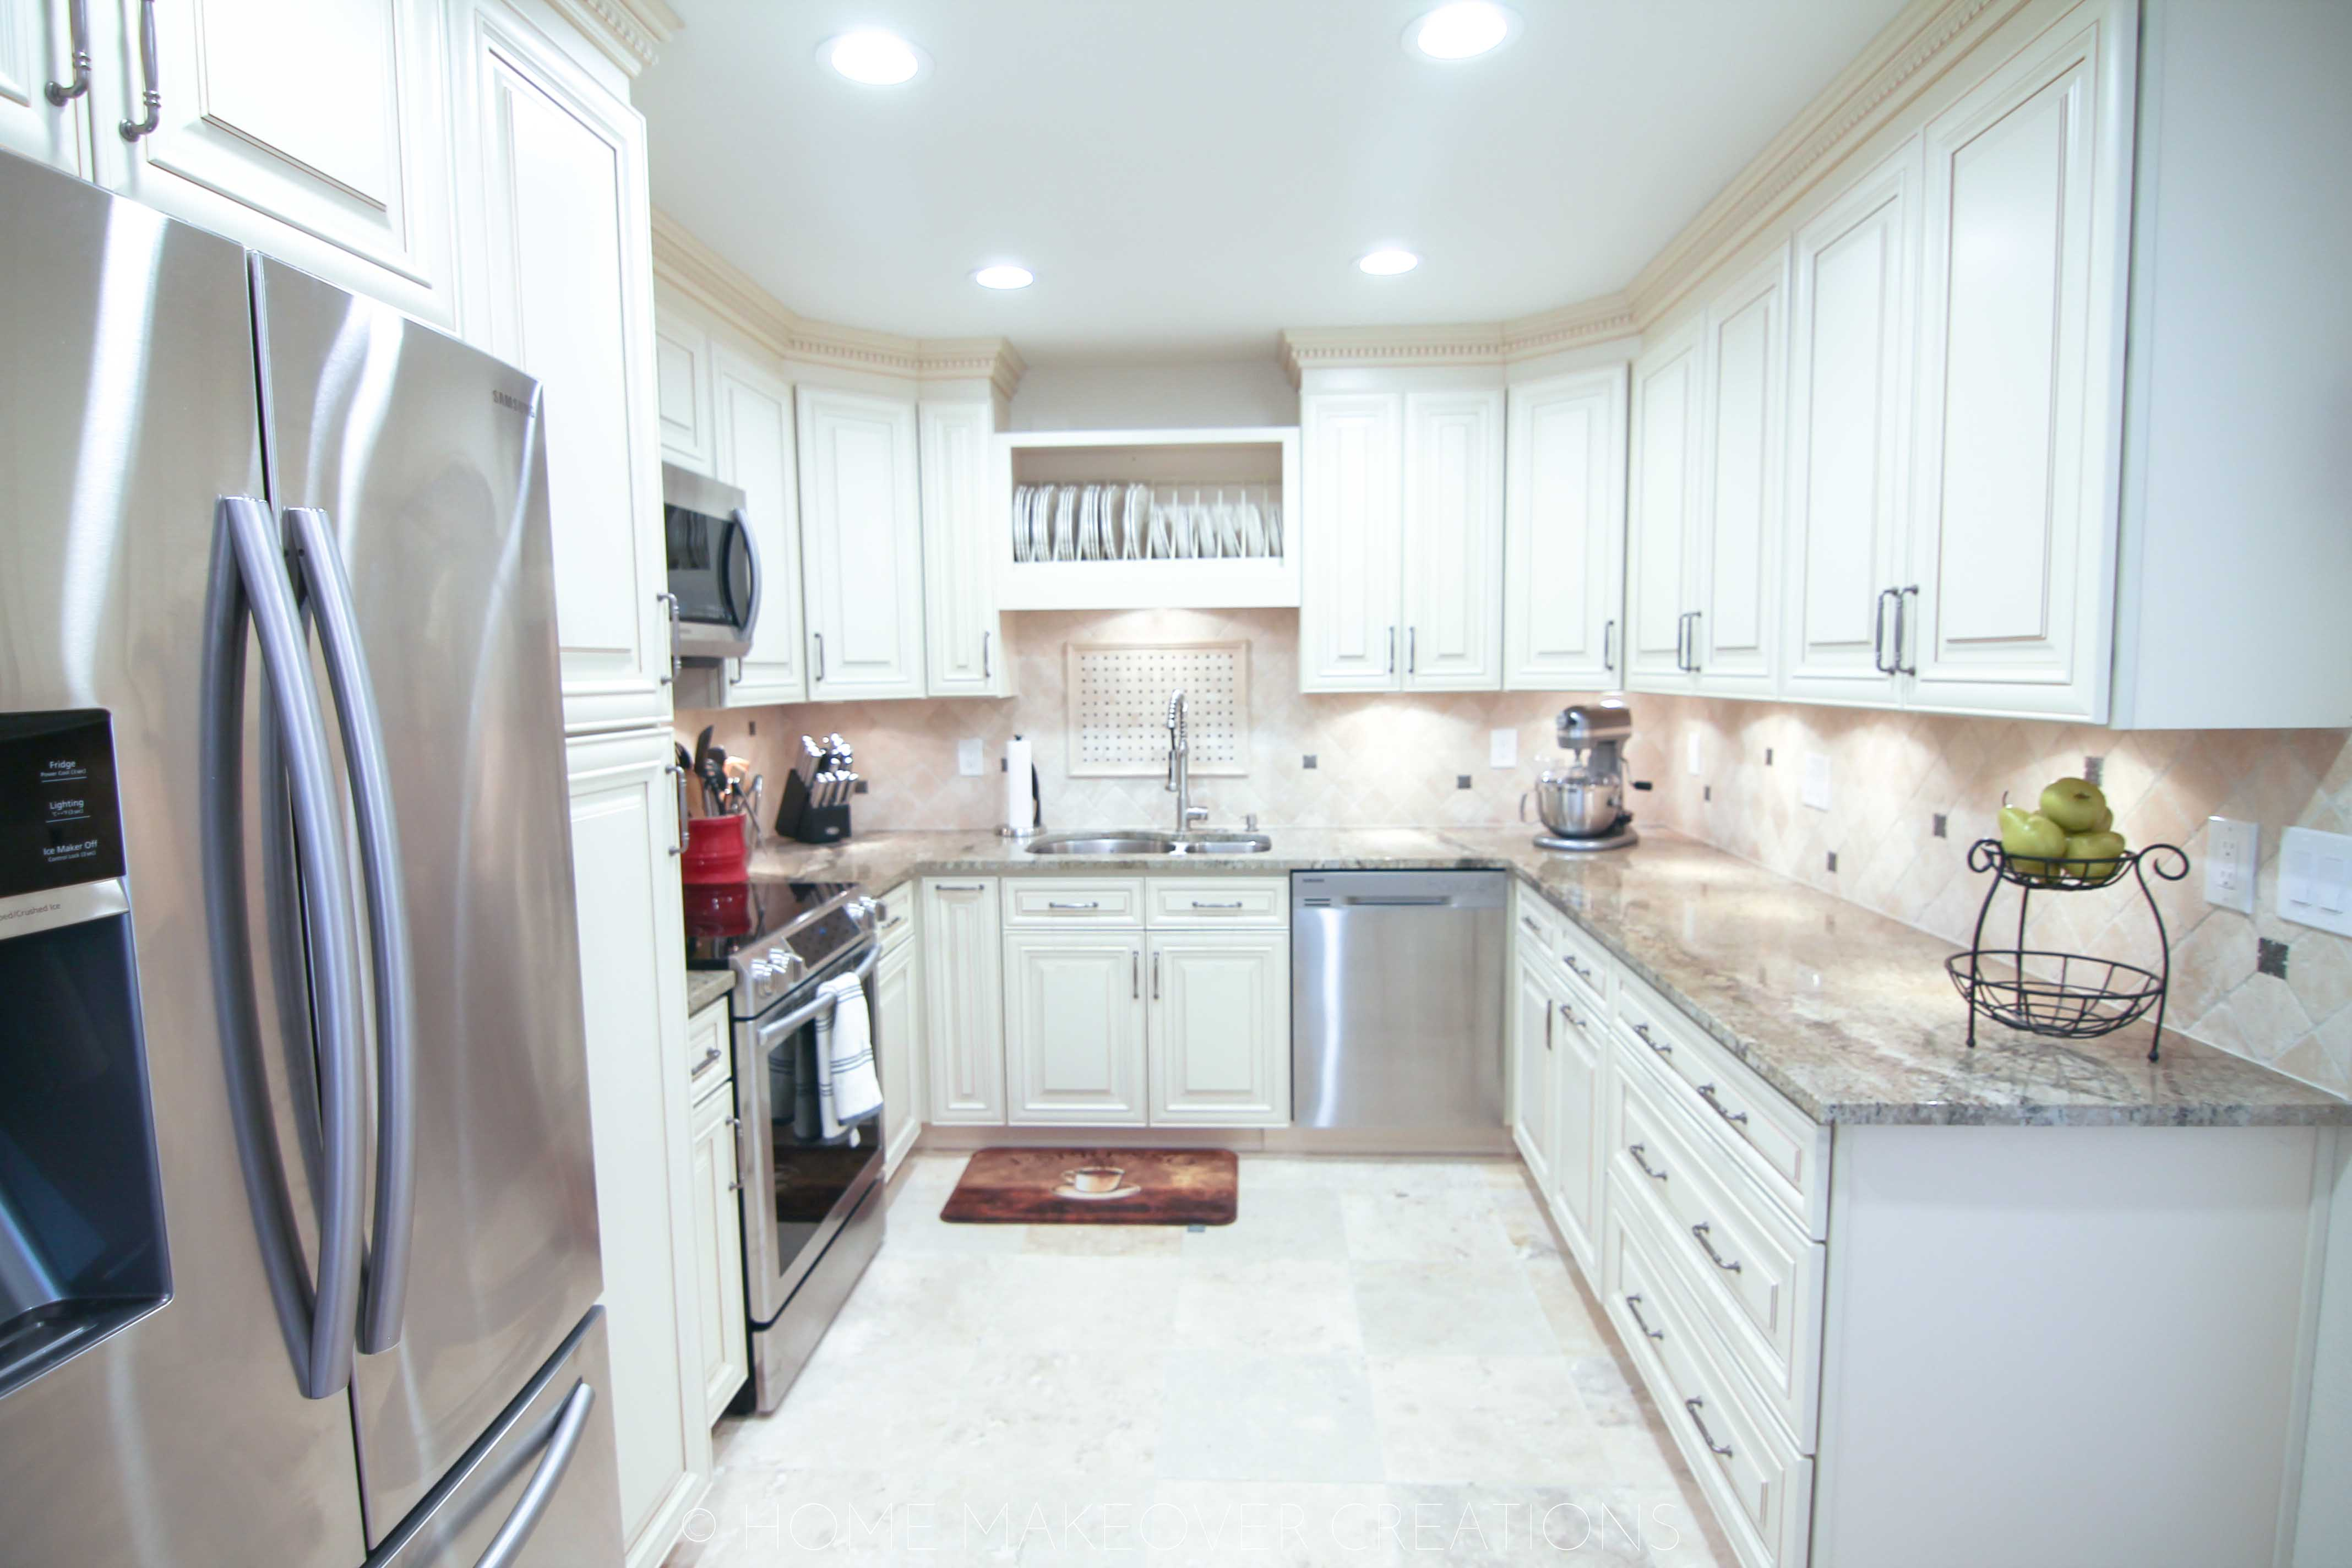 Kitchen remodel mesa arizona 6 home makeover creations for Home creations